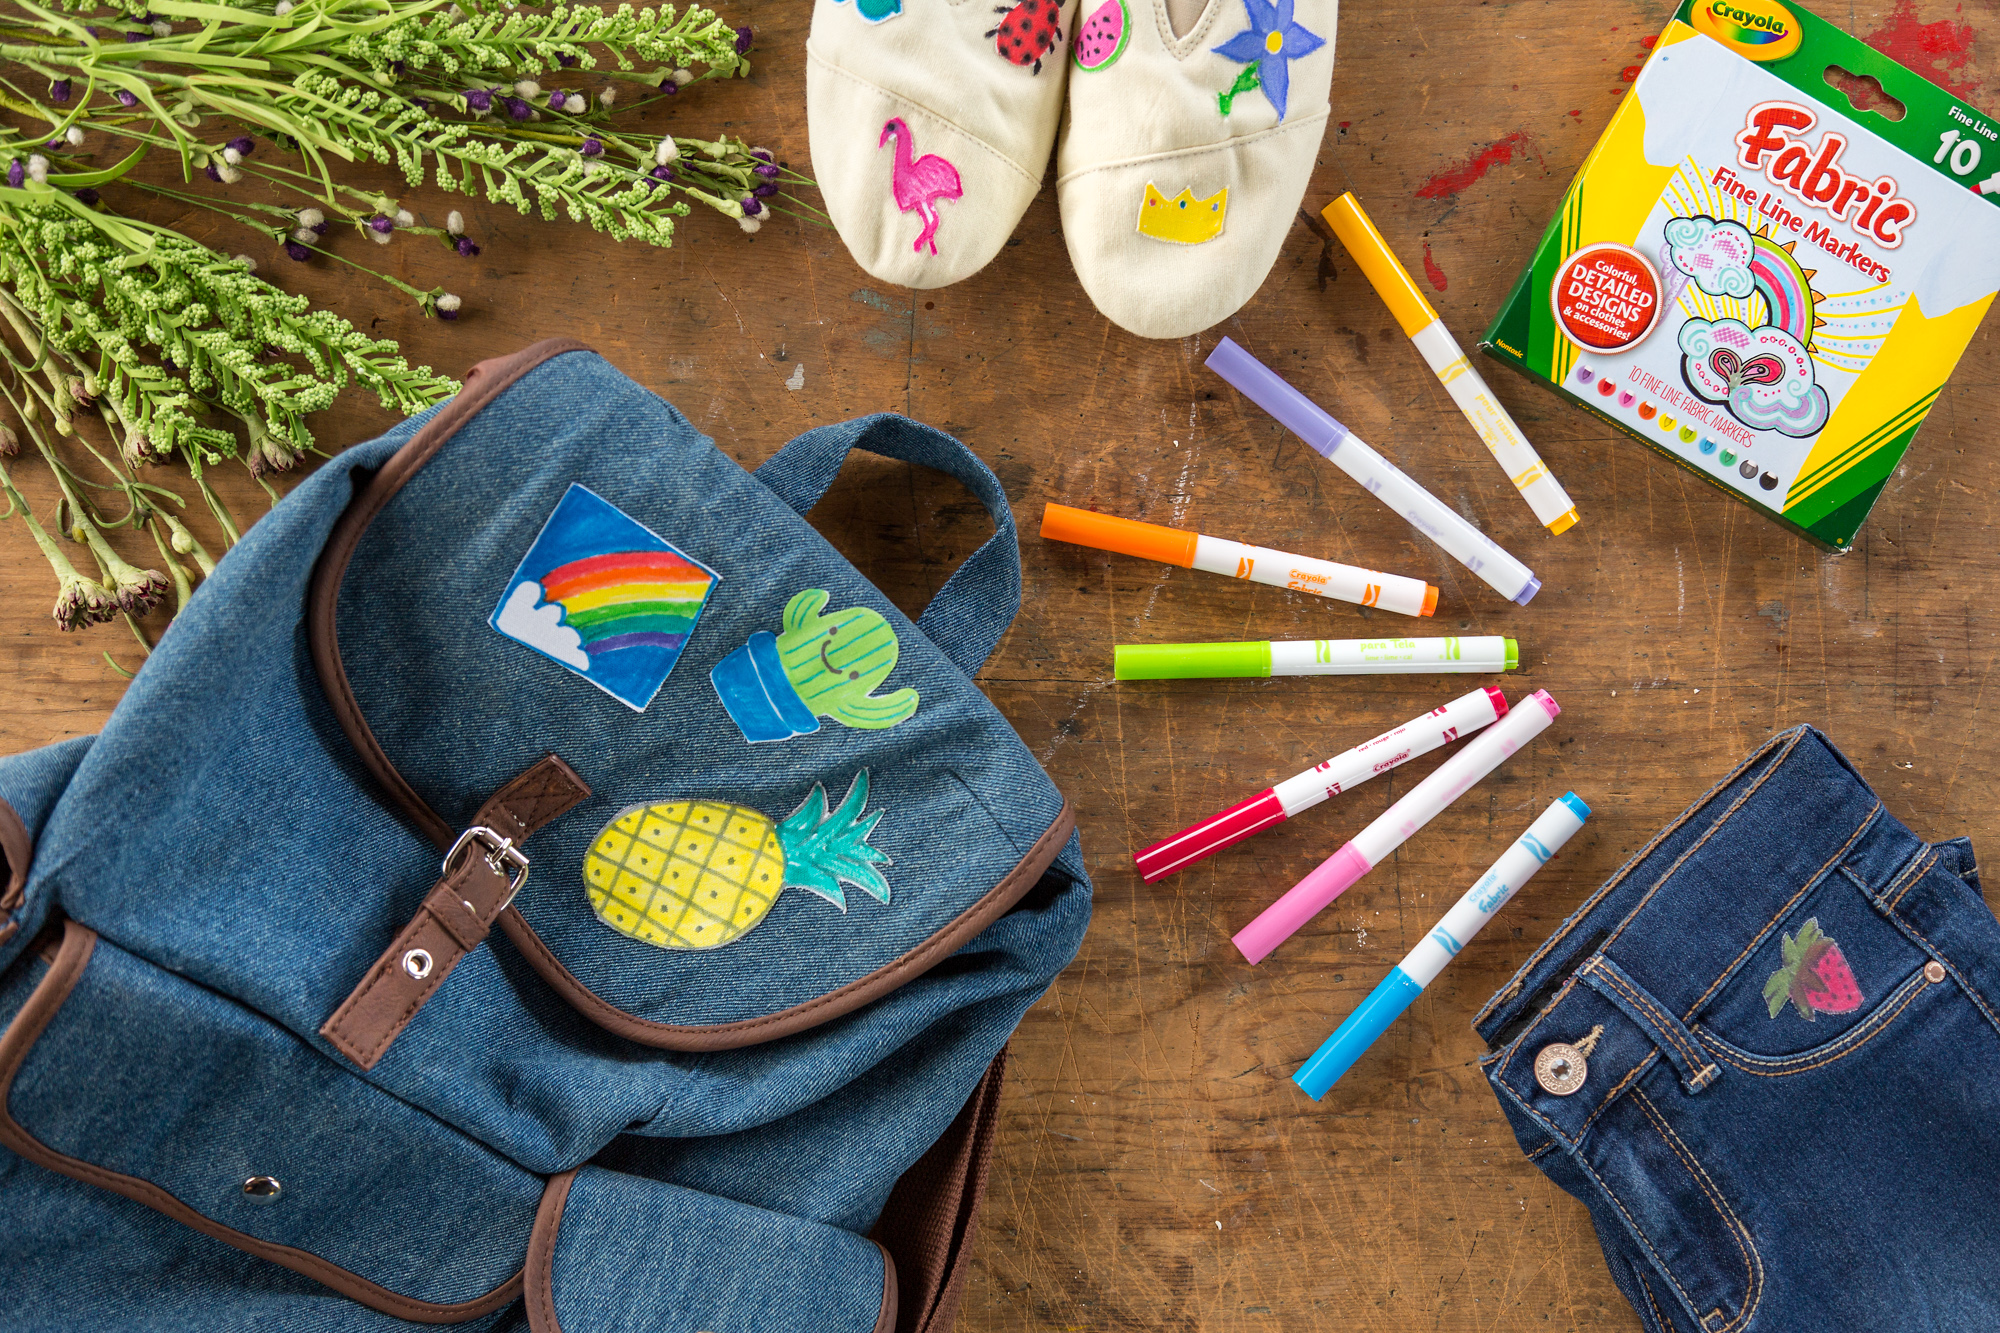 77227c1284a2 Picking Patch  Jean Jacket Customization with Crayola X Levis